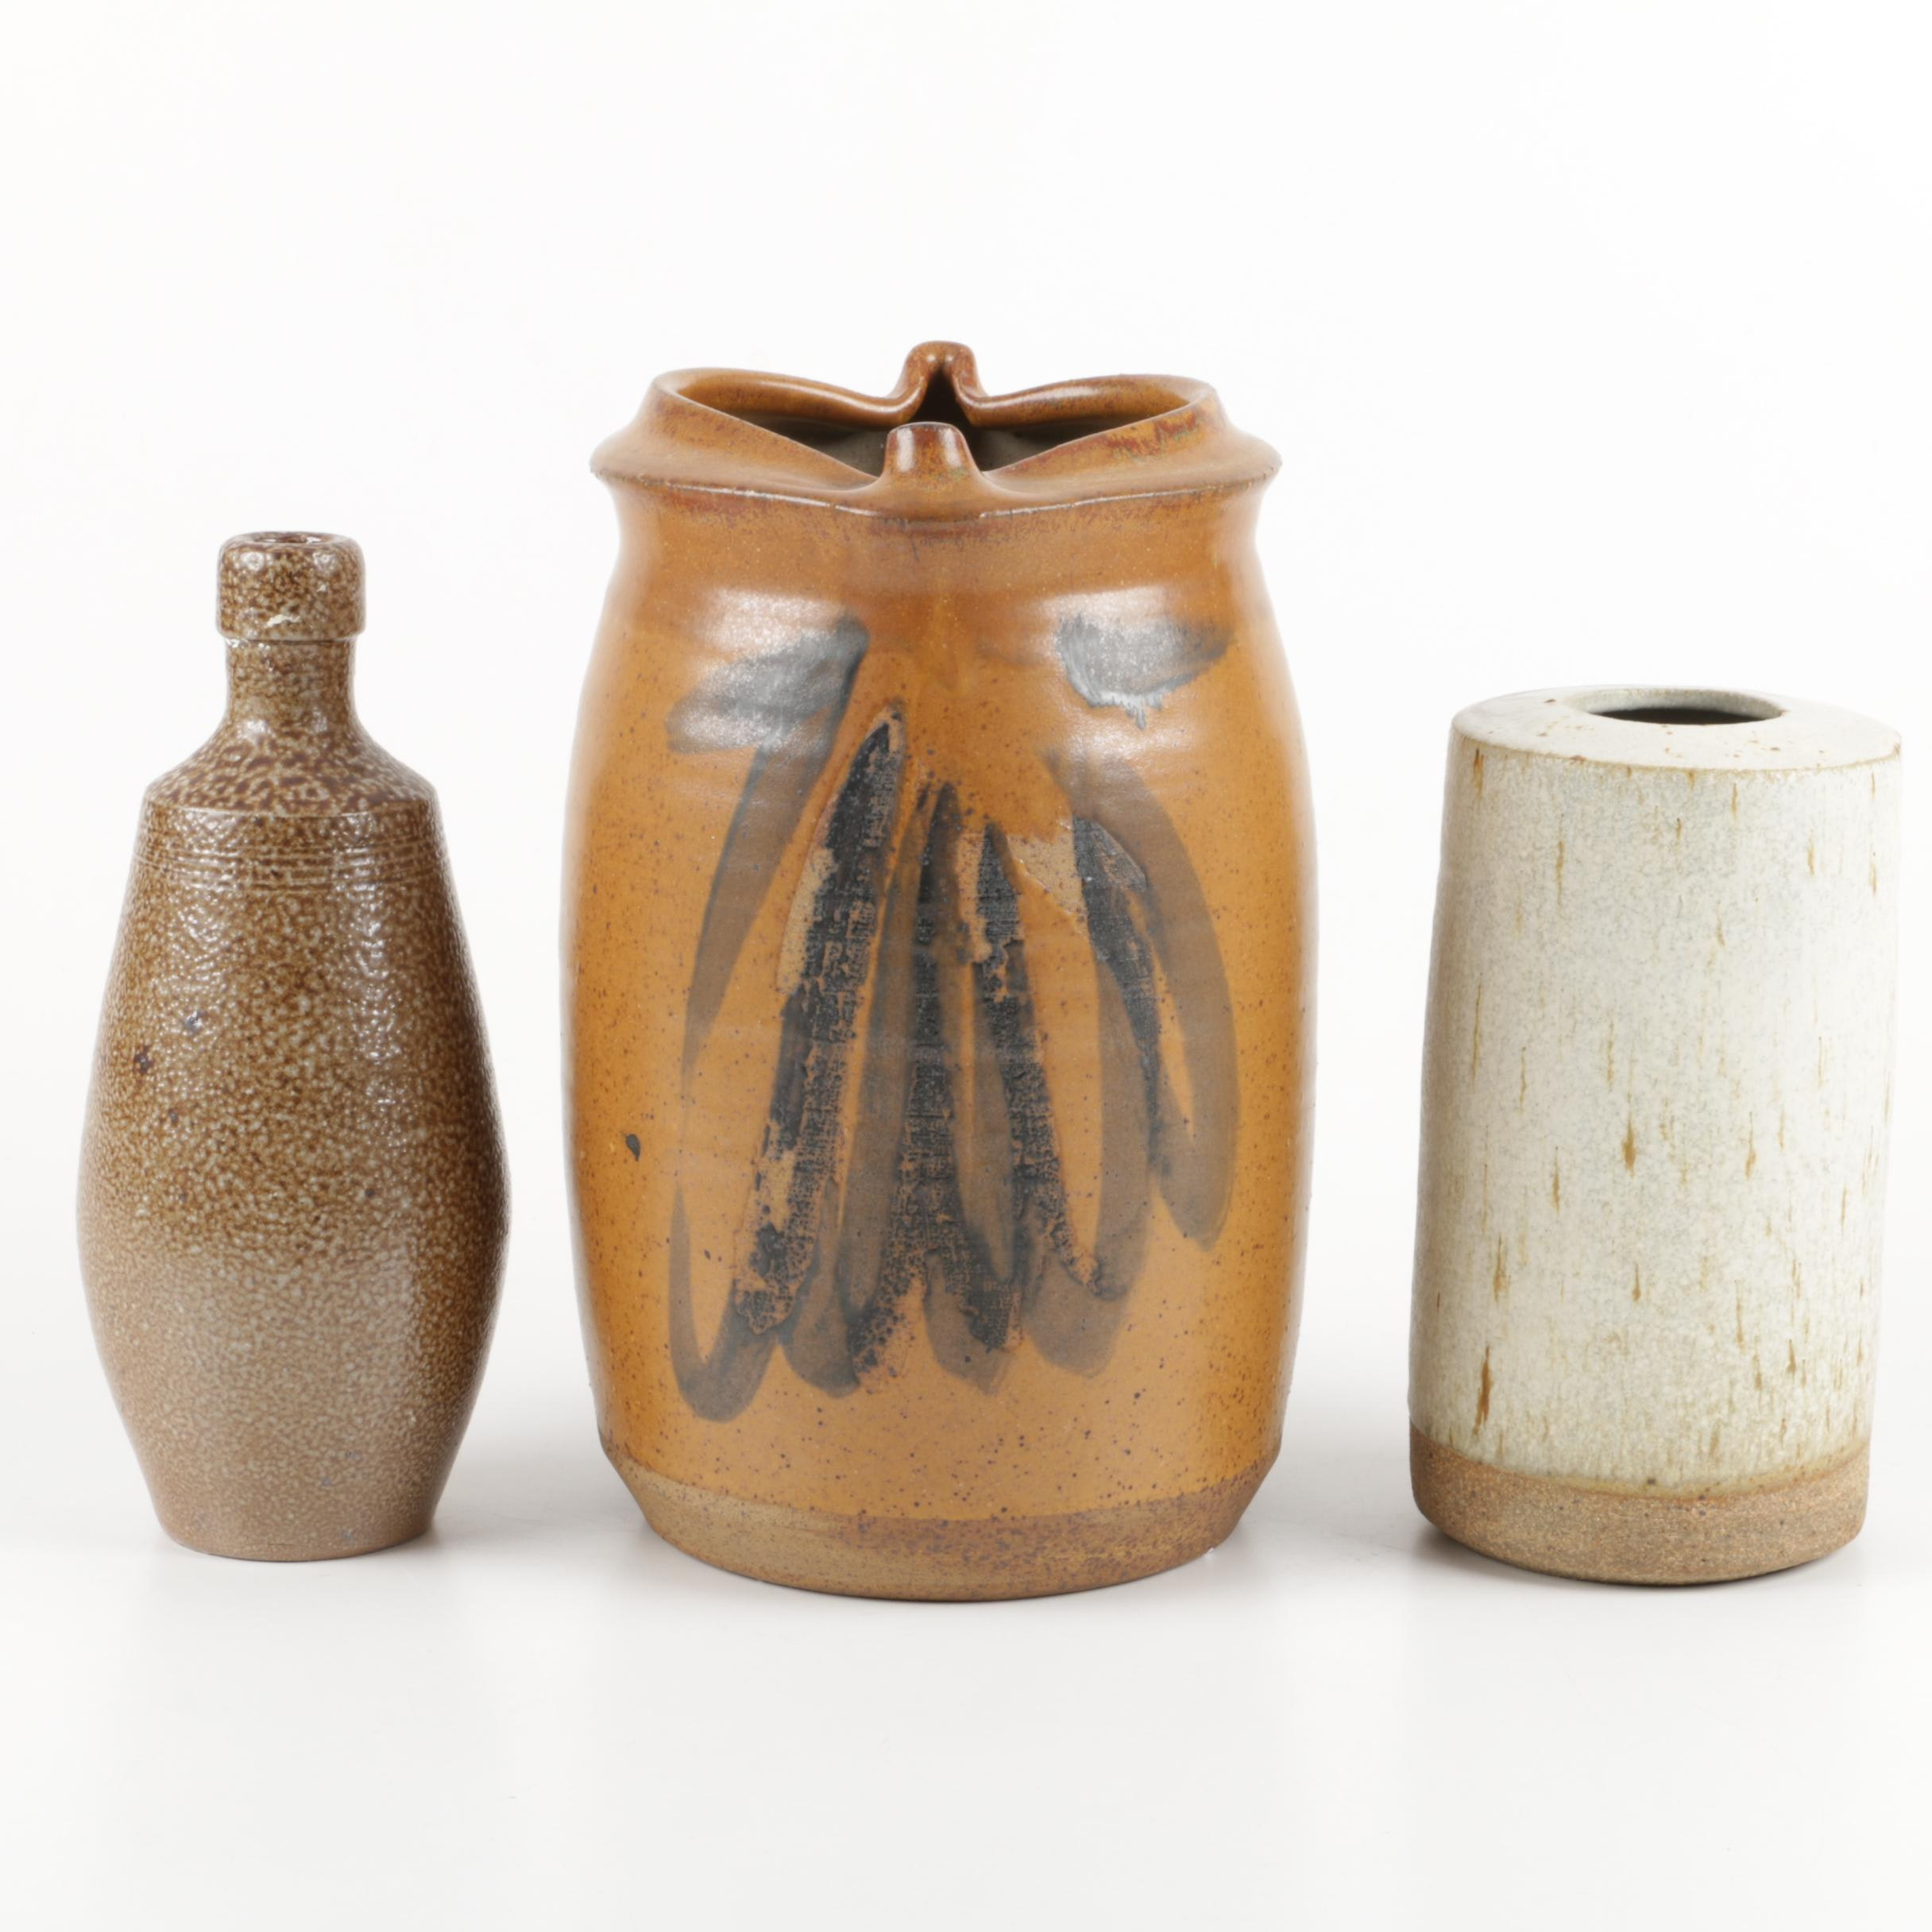 Nick Prokus Stoneware Vase and Other Ceramic Vessels